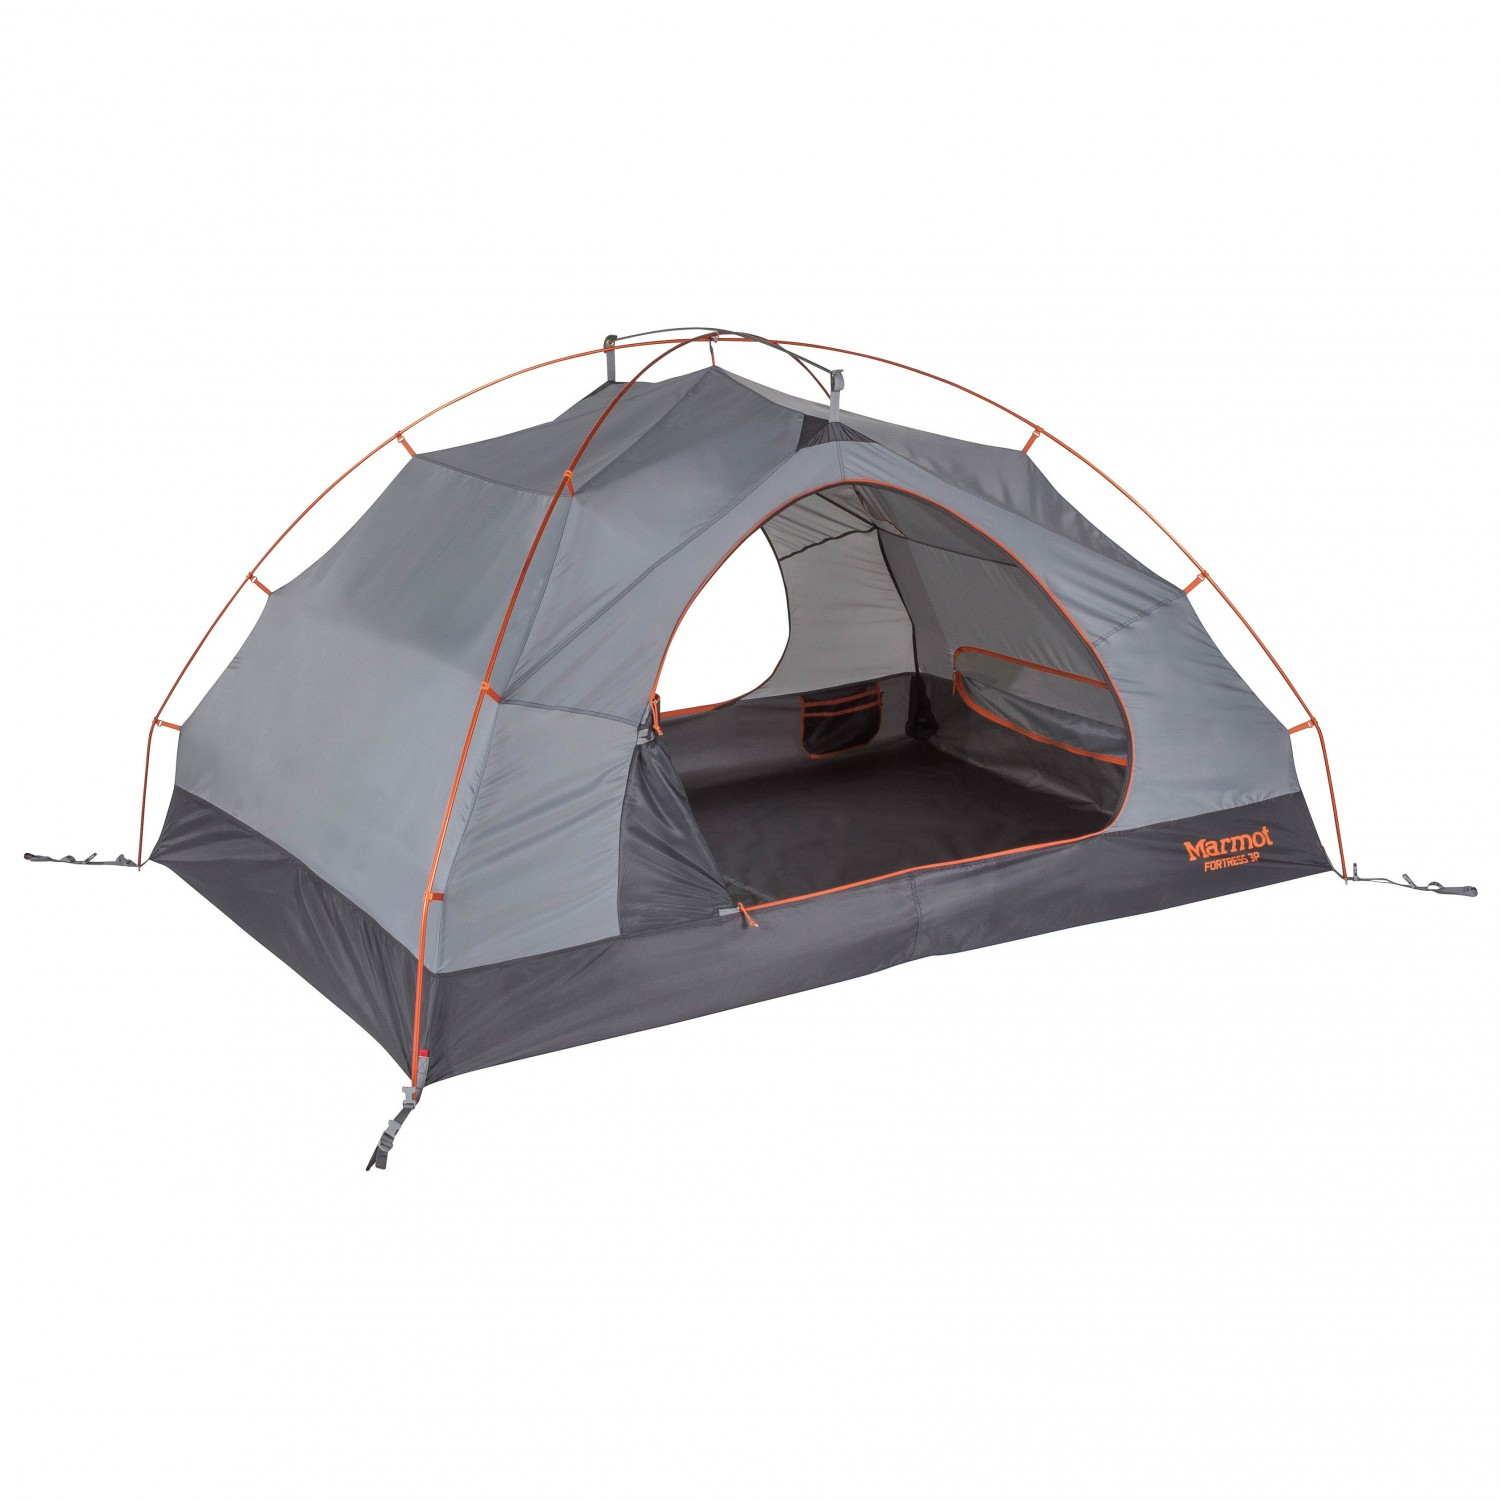 ... Marmot - Fortress 3P - 3 man tent ...  sc 1 st  Alpinetrek & Marmot Fortress 3P - 3 Man Tent | Free UK Delivery | Alpinetrek.co.uk